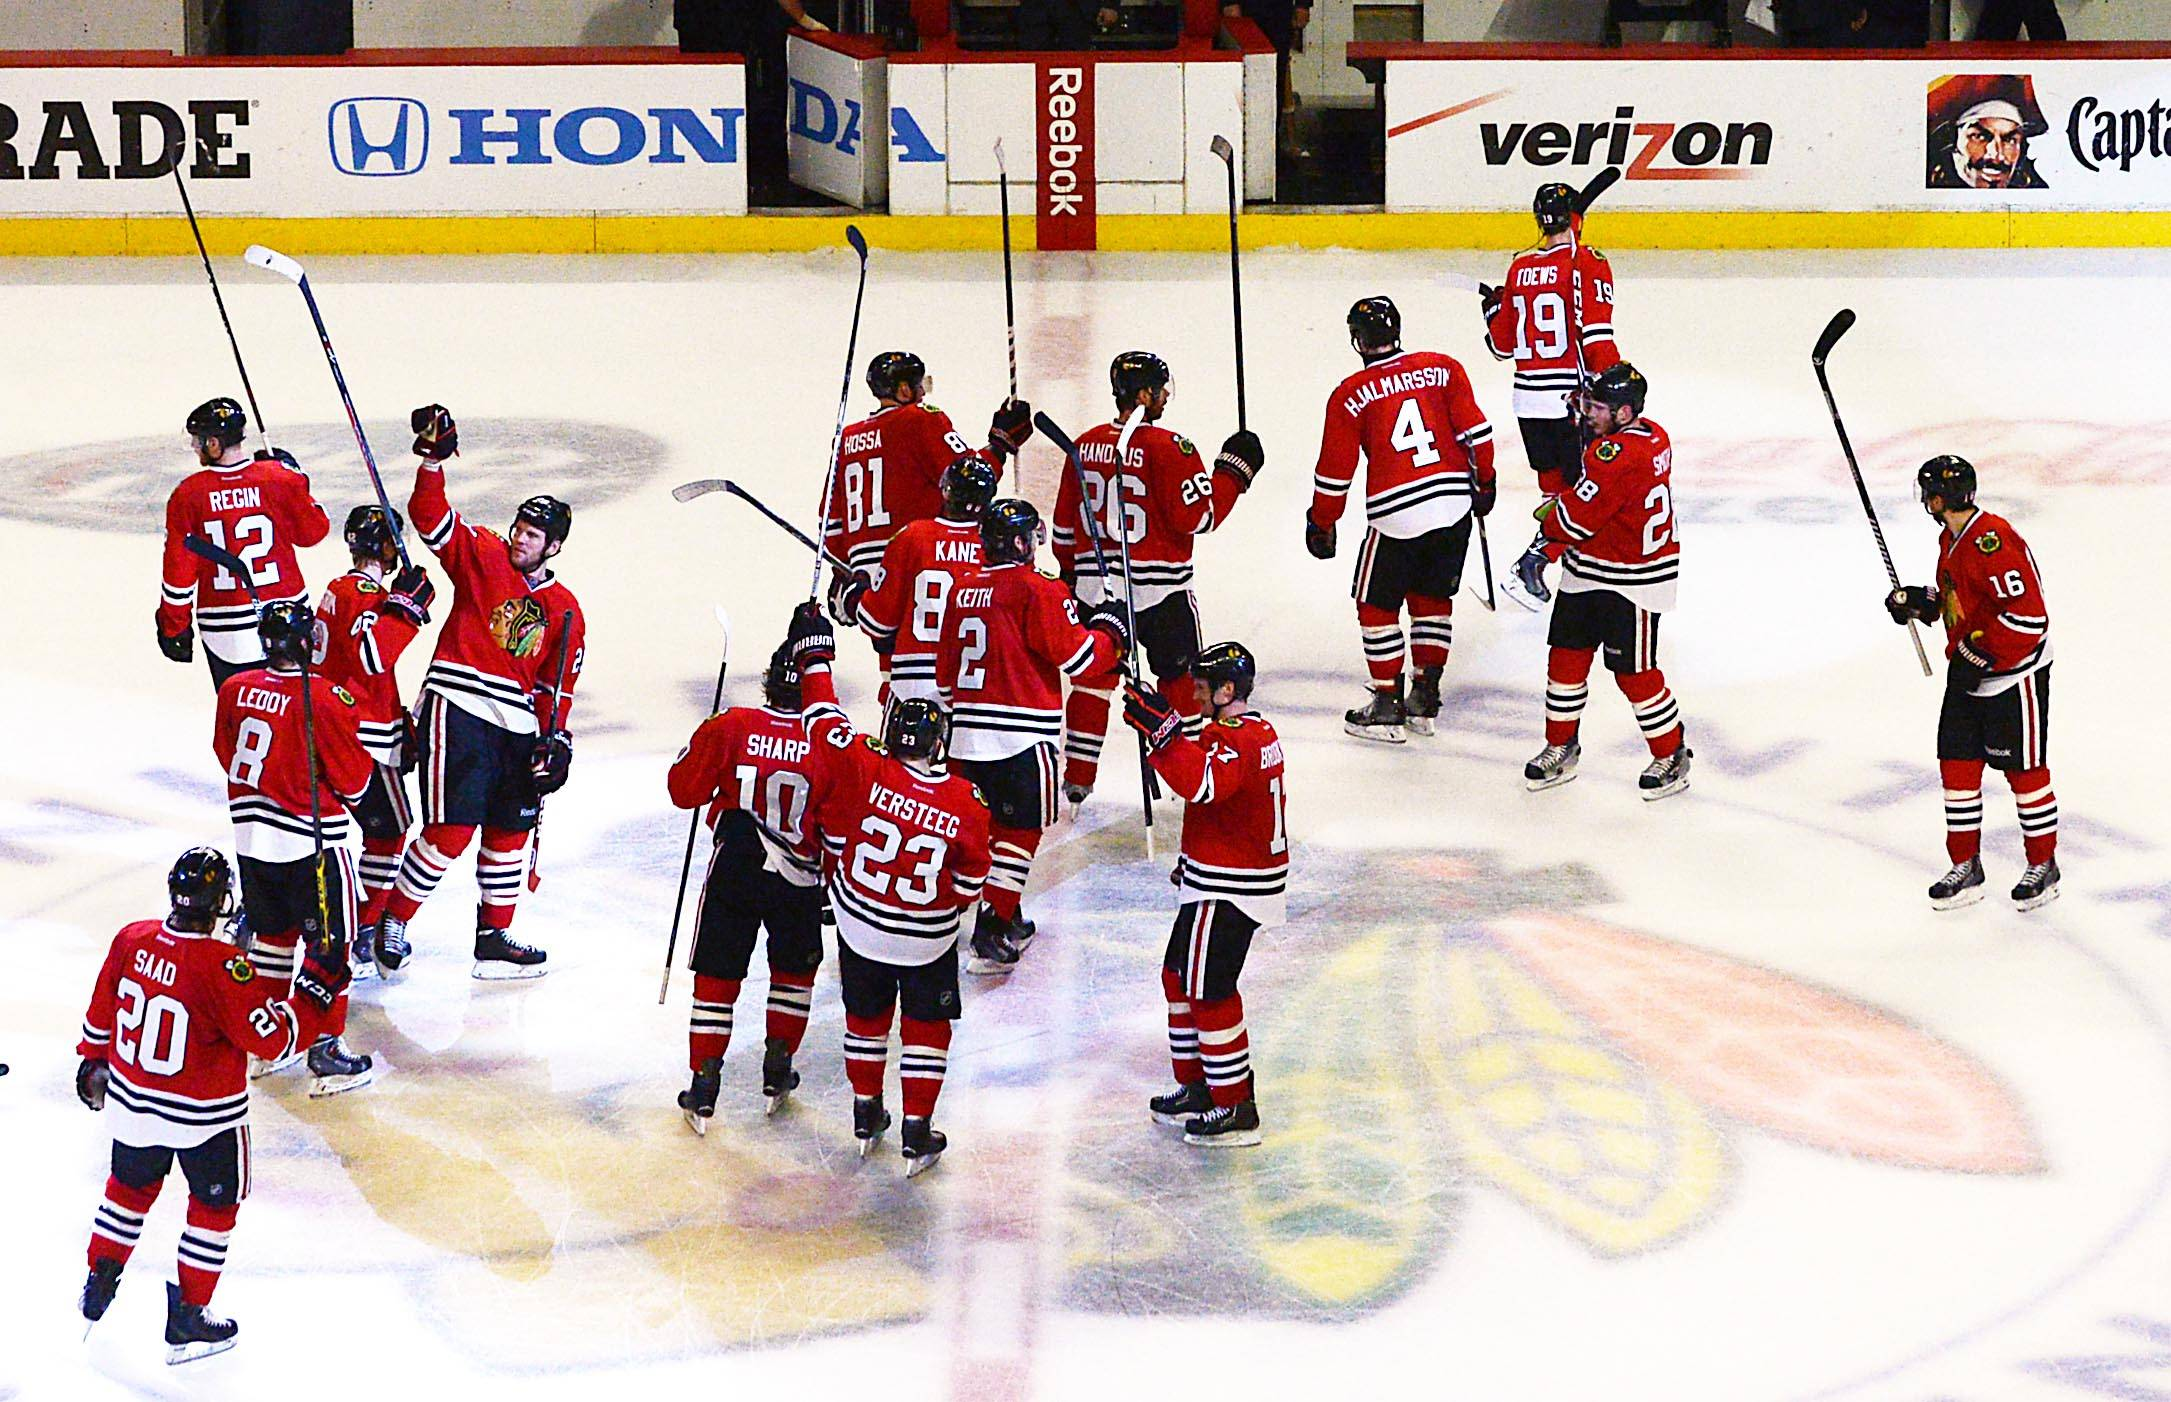 The Chicago Blackhawks raise their sticks after their 2-1 win over the Minnesota Wild Sunday.